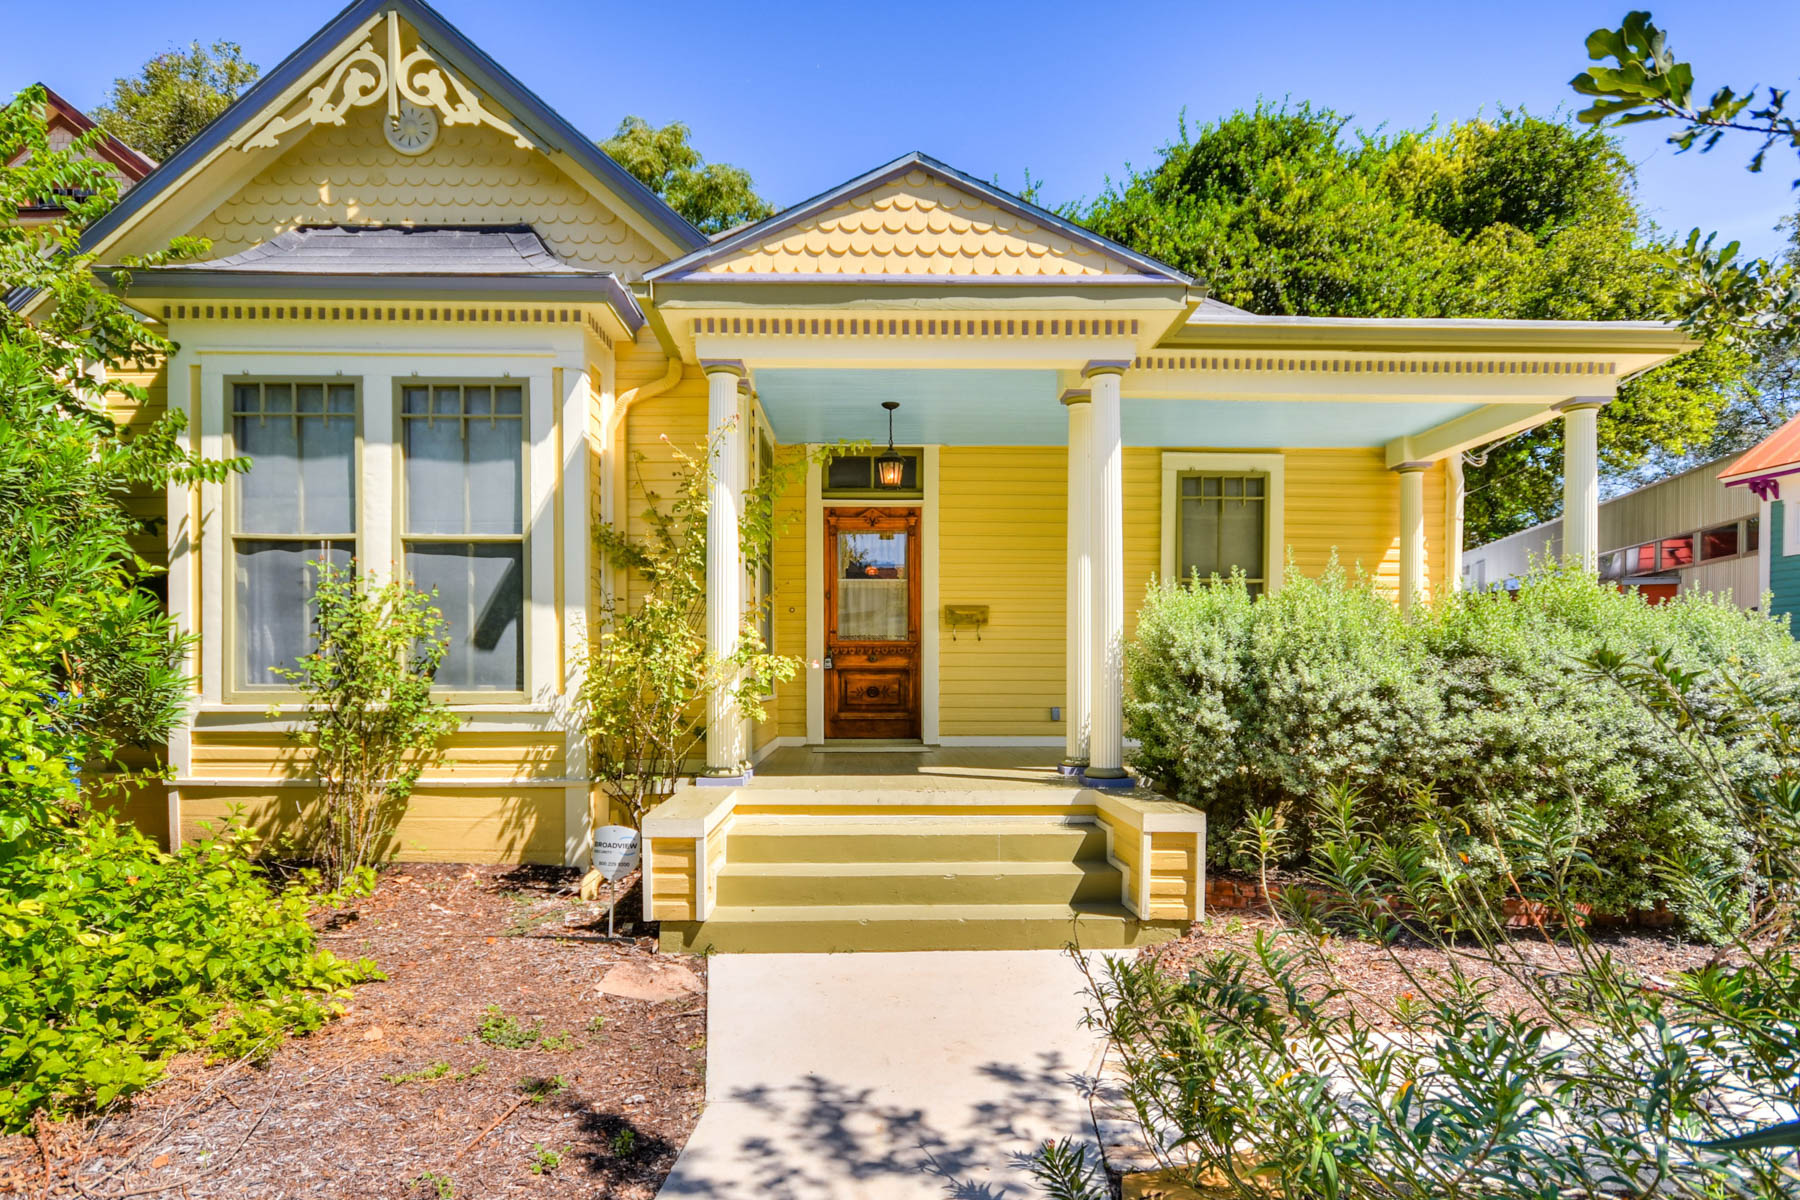 Single Family Home for Sale at Picture Perfect King William Victorian Cottage 422 Mission St San Antonio, Texas 78210 United States